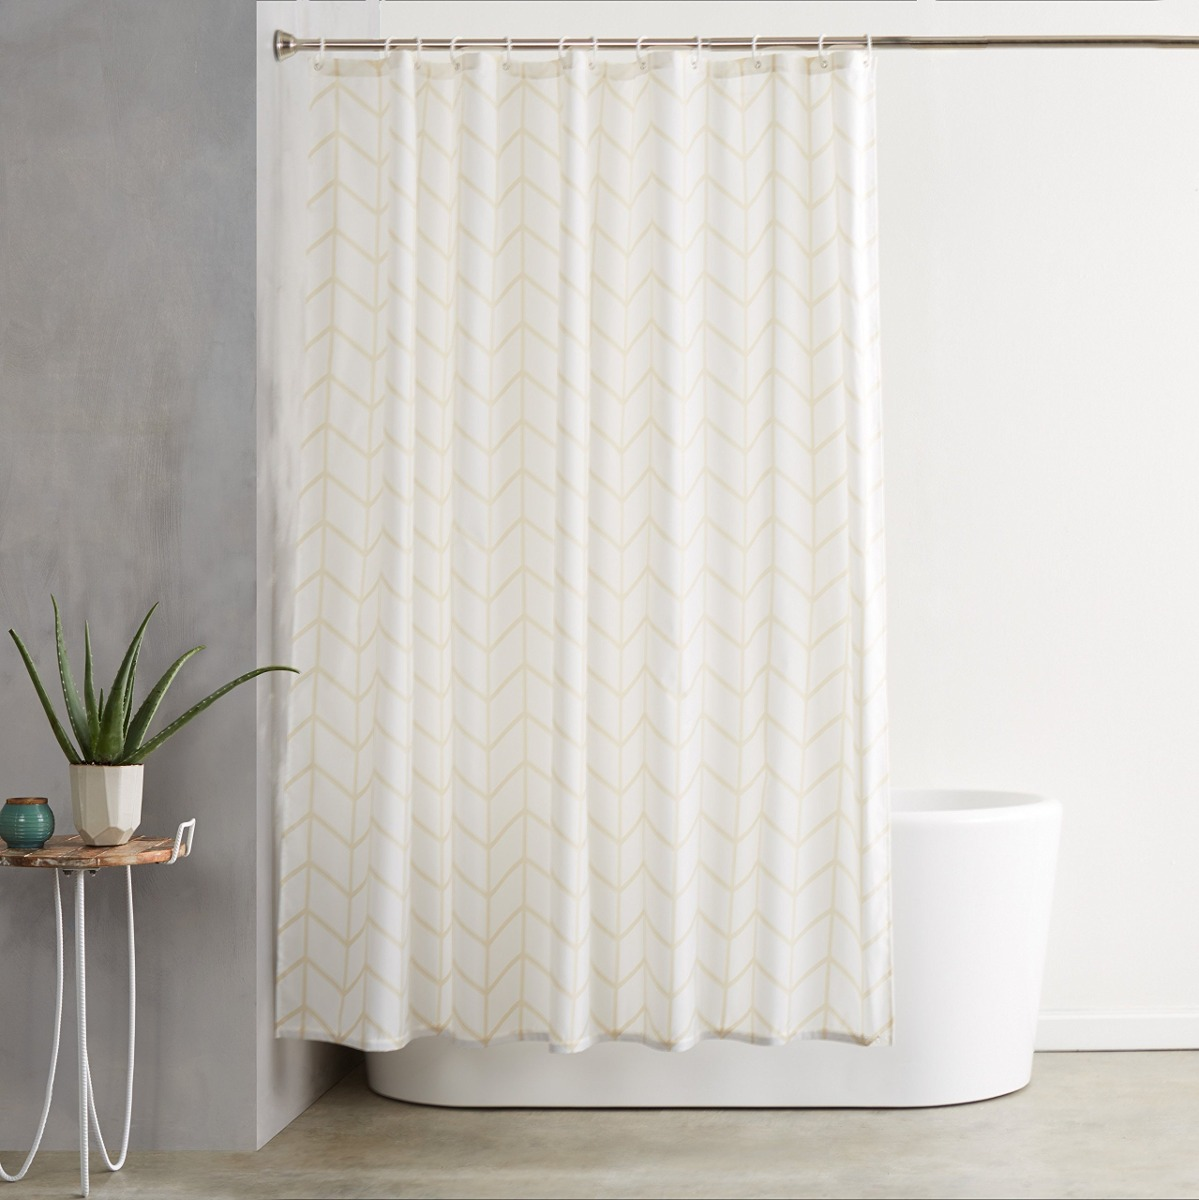 Amazon Cortinas Baño Amazon Basics Cortina De Baño 183 X 183 Cm Diseño De Esp